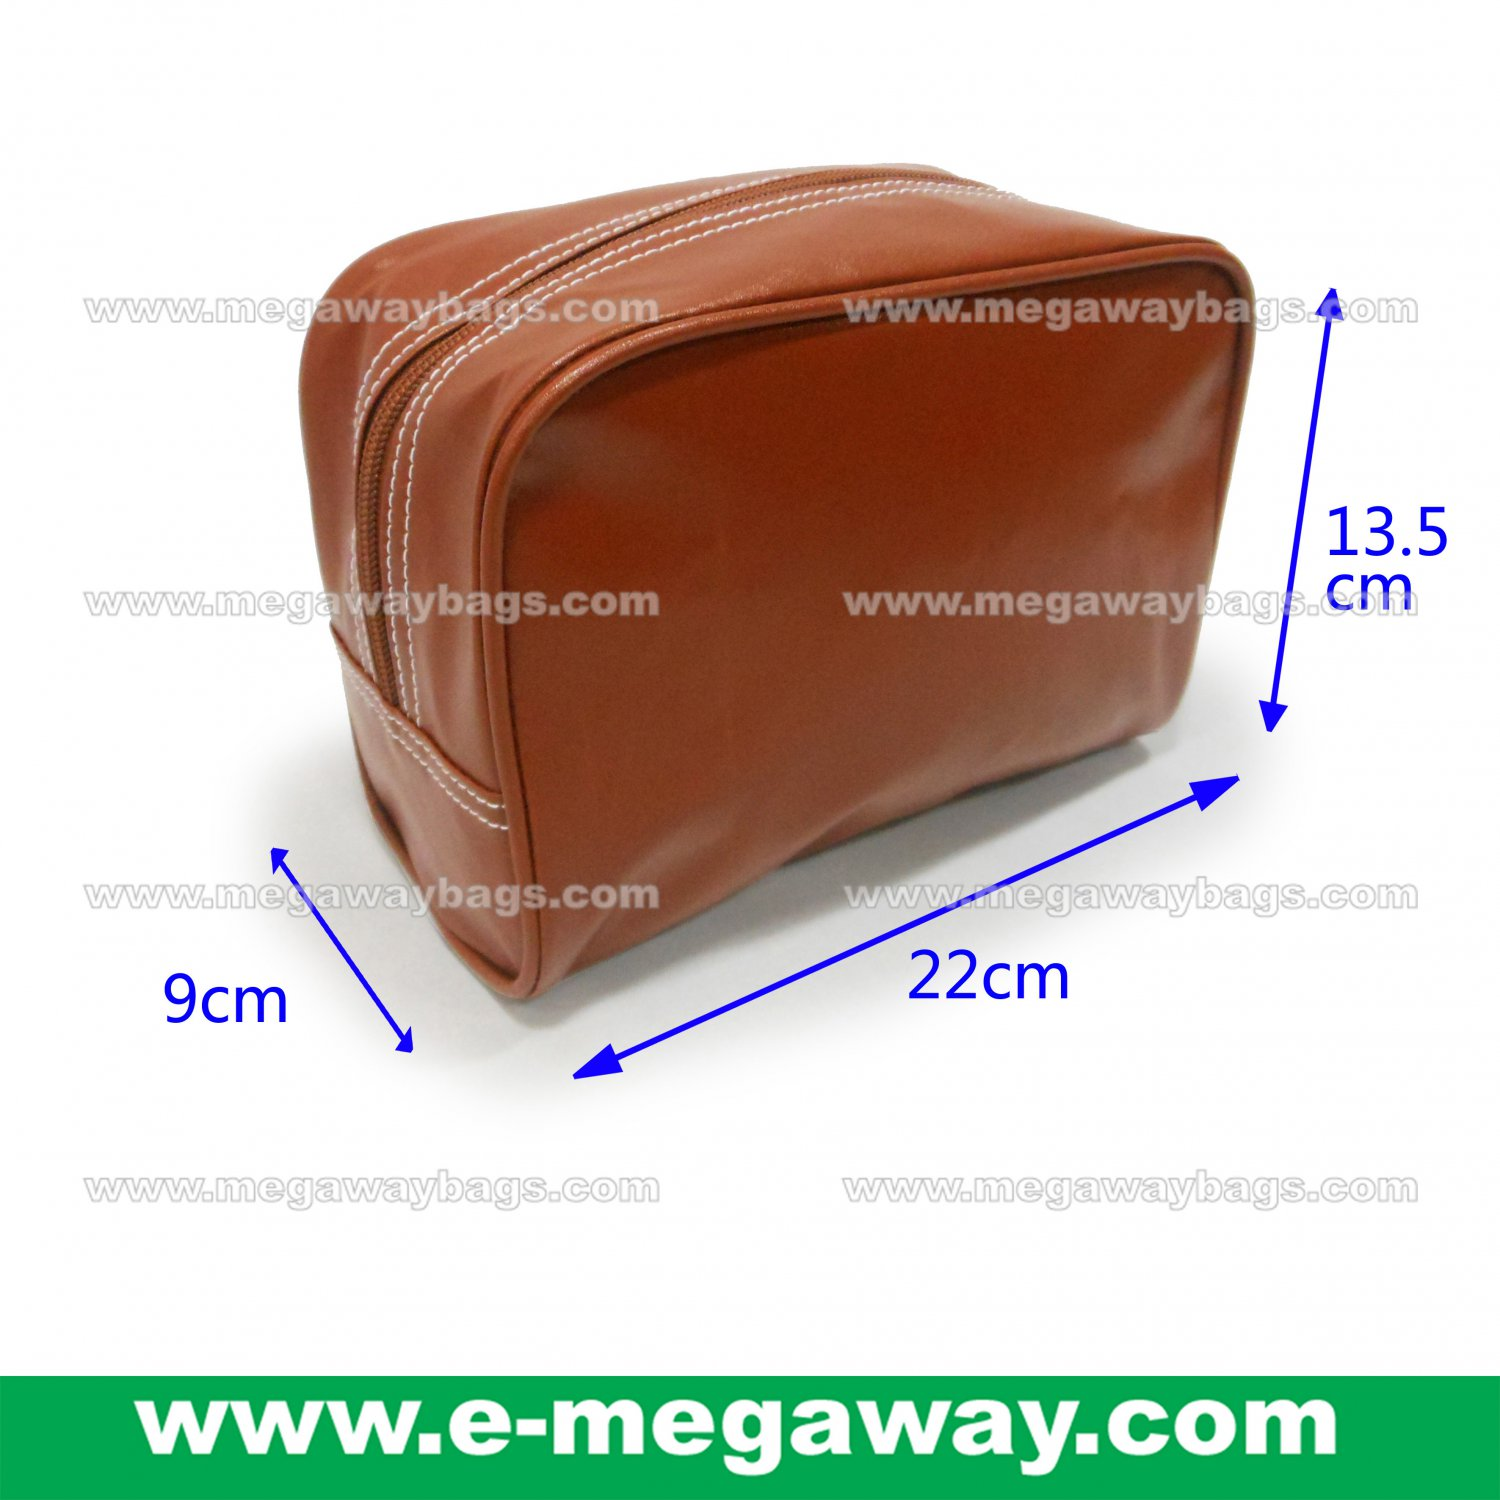 Unisex Travel Amenity Beauty Makeup Bag Purses Cosmetic Spa Pouch MegawayBags #CC-0972